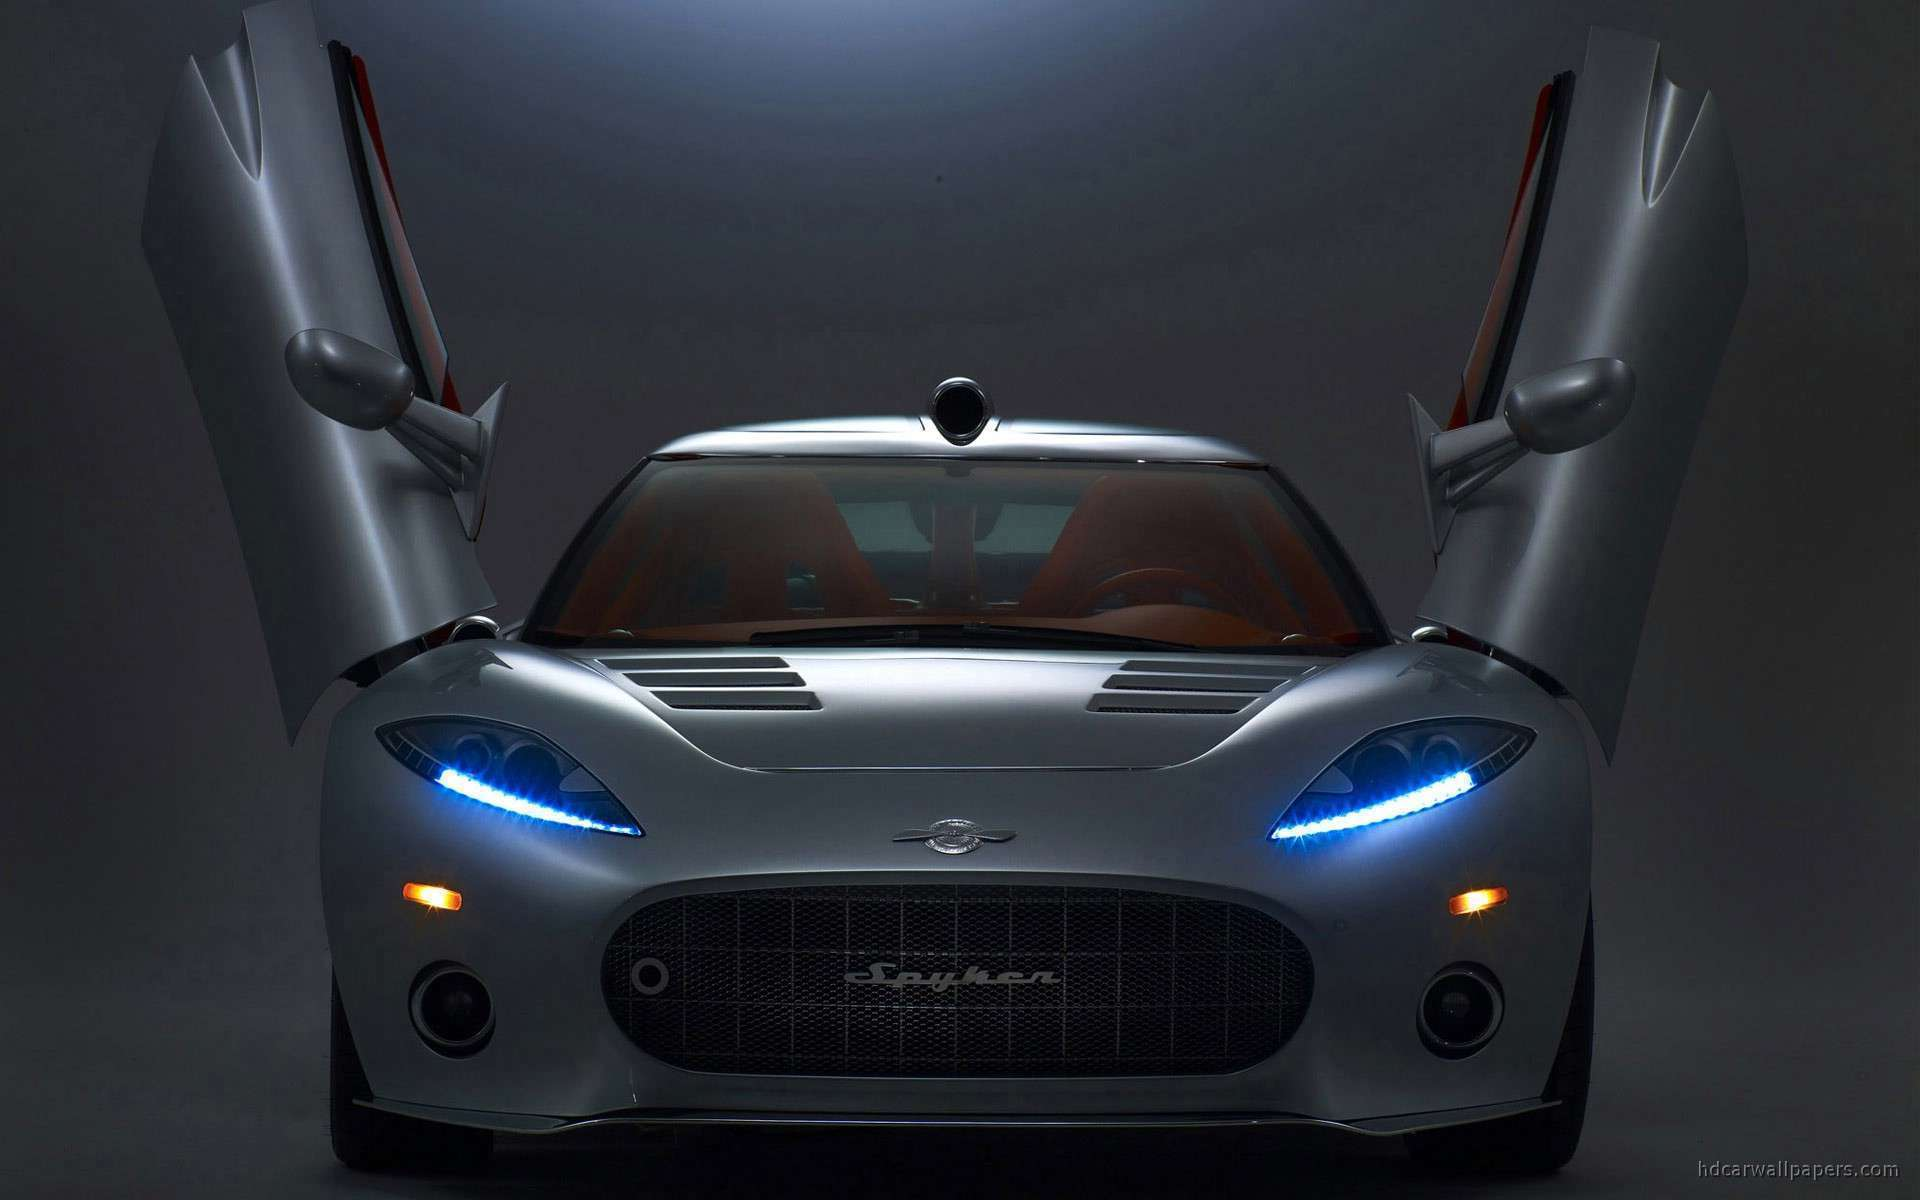 Spyker C8 Aileron Hd Wallpapers